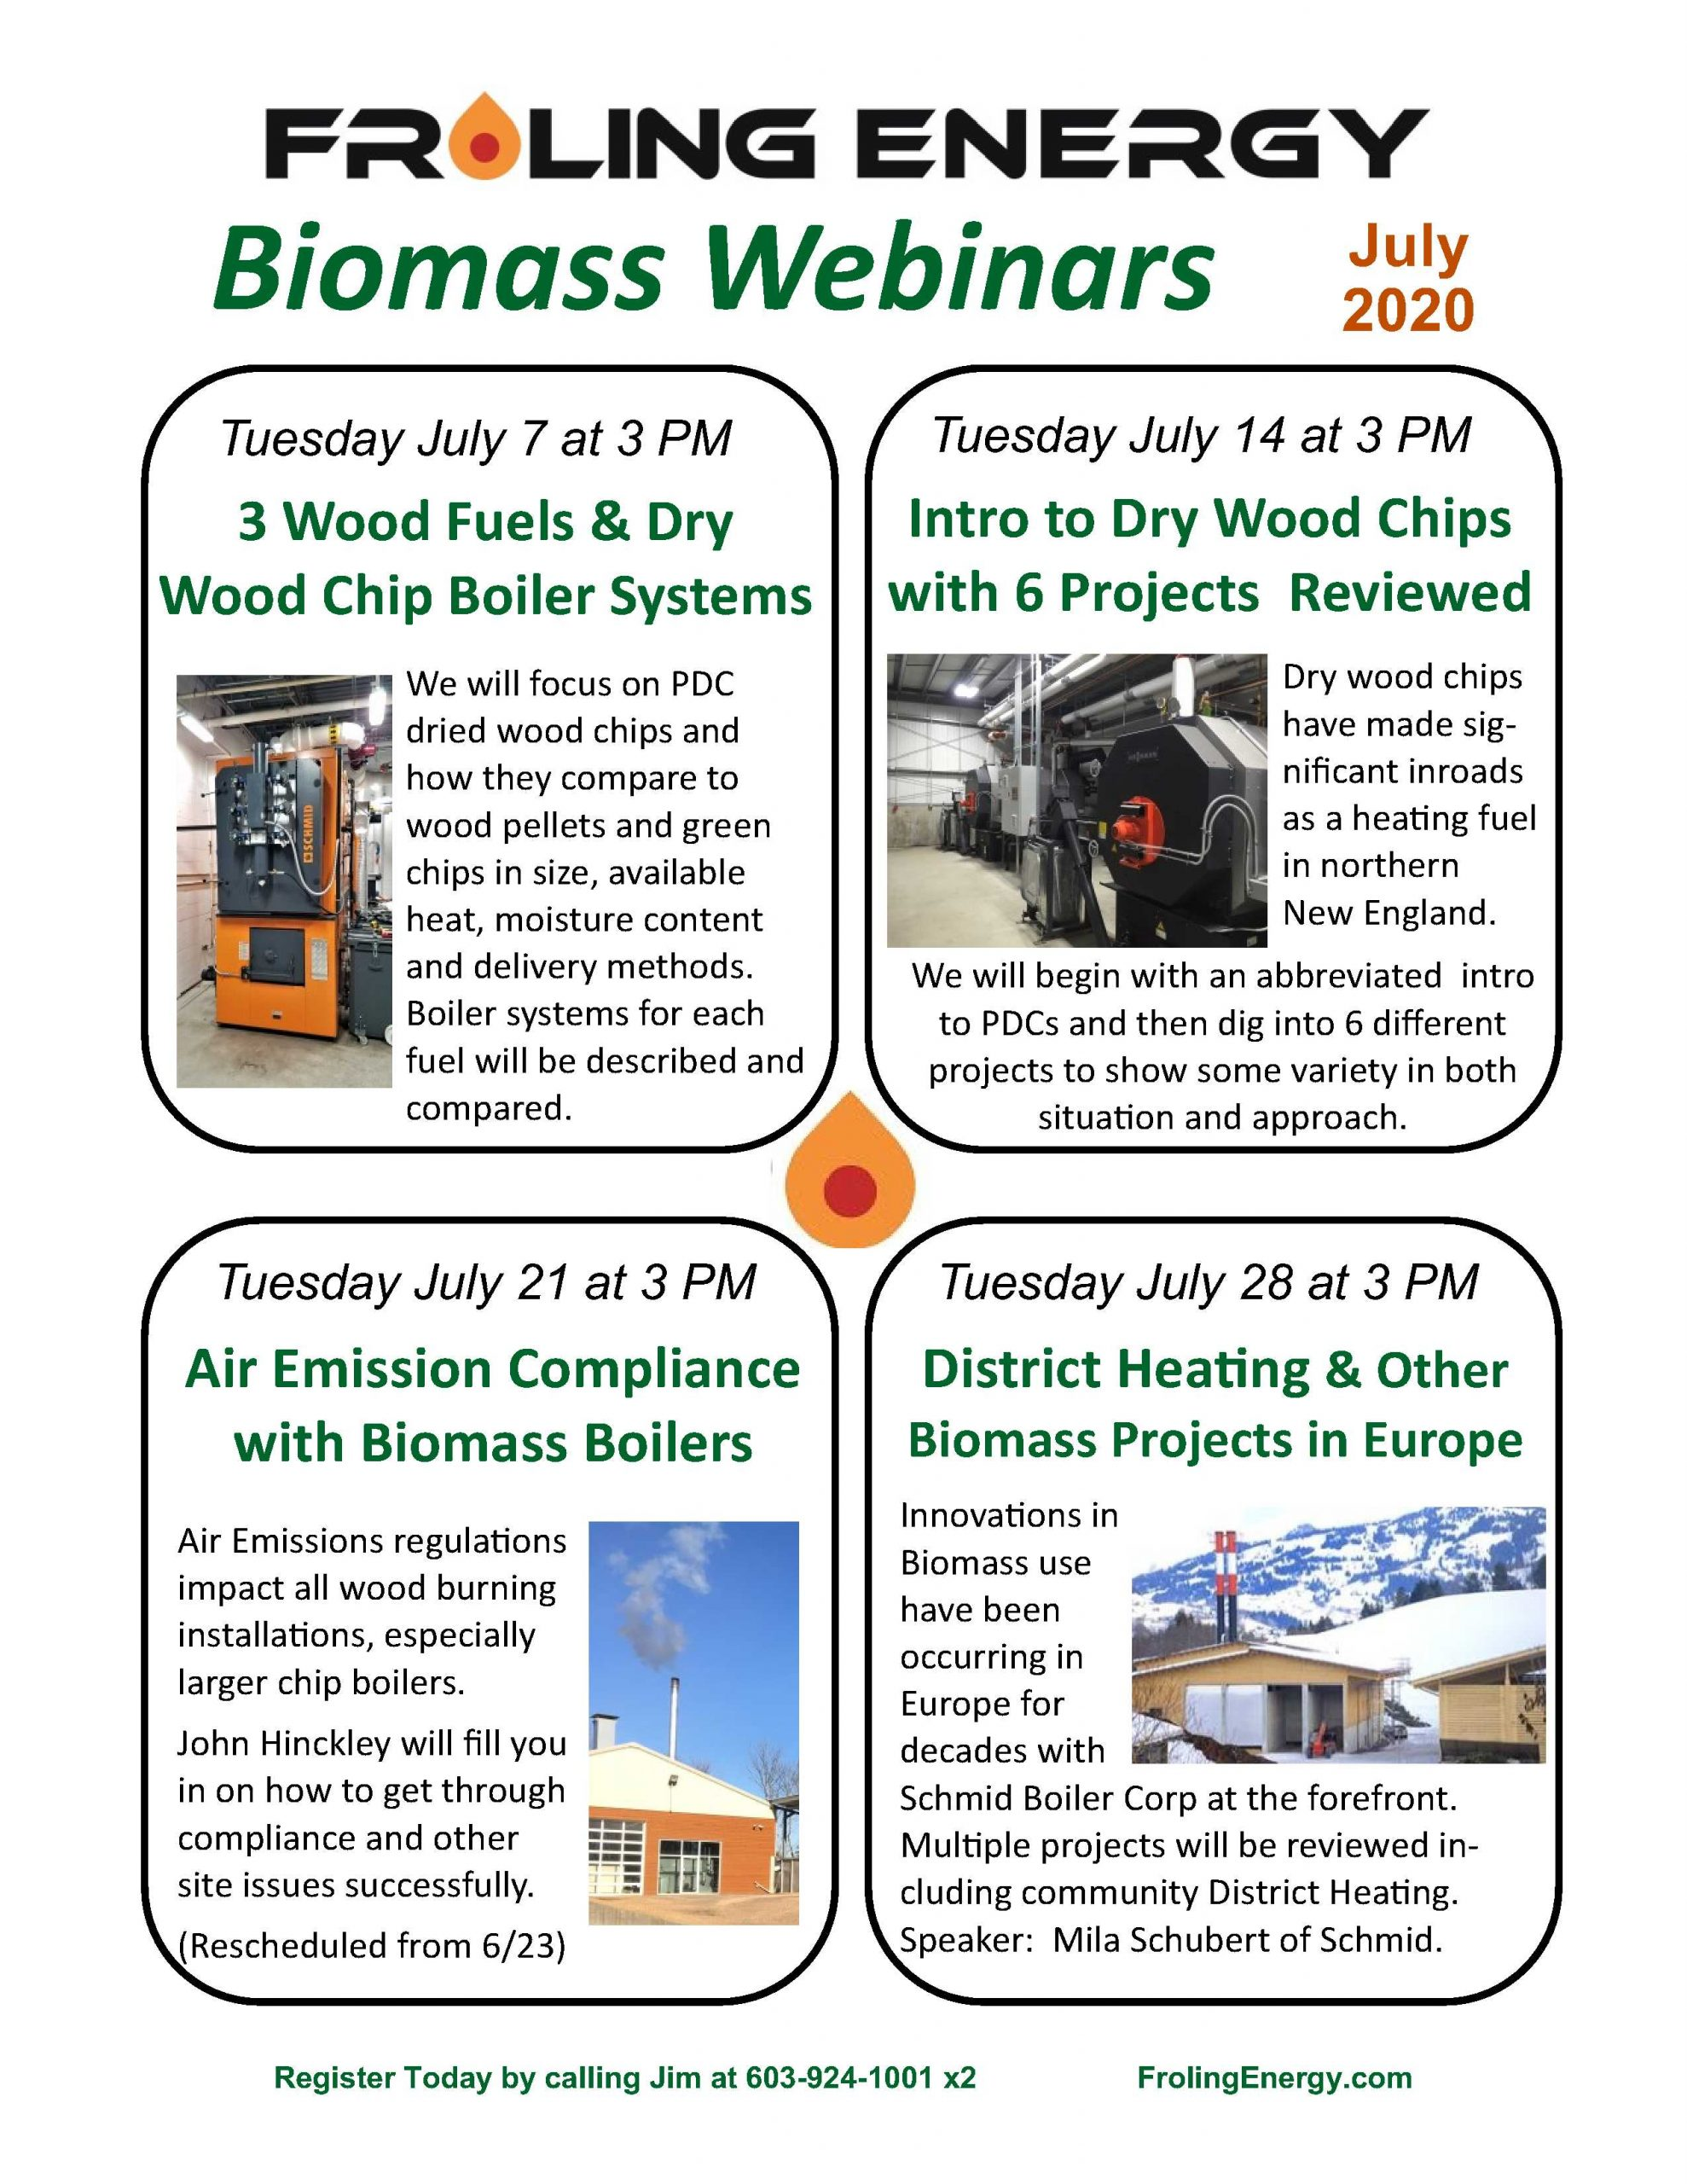 biomass webinars in july 2020